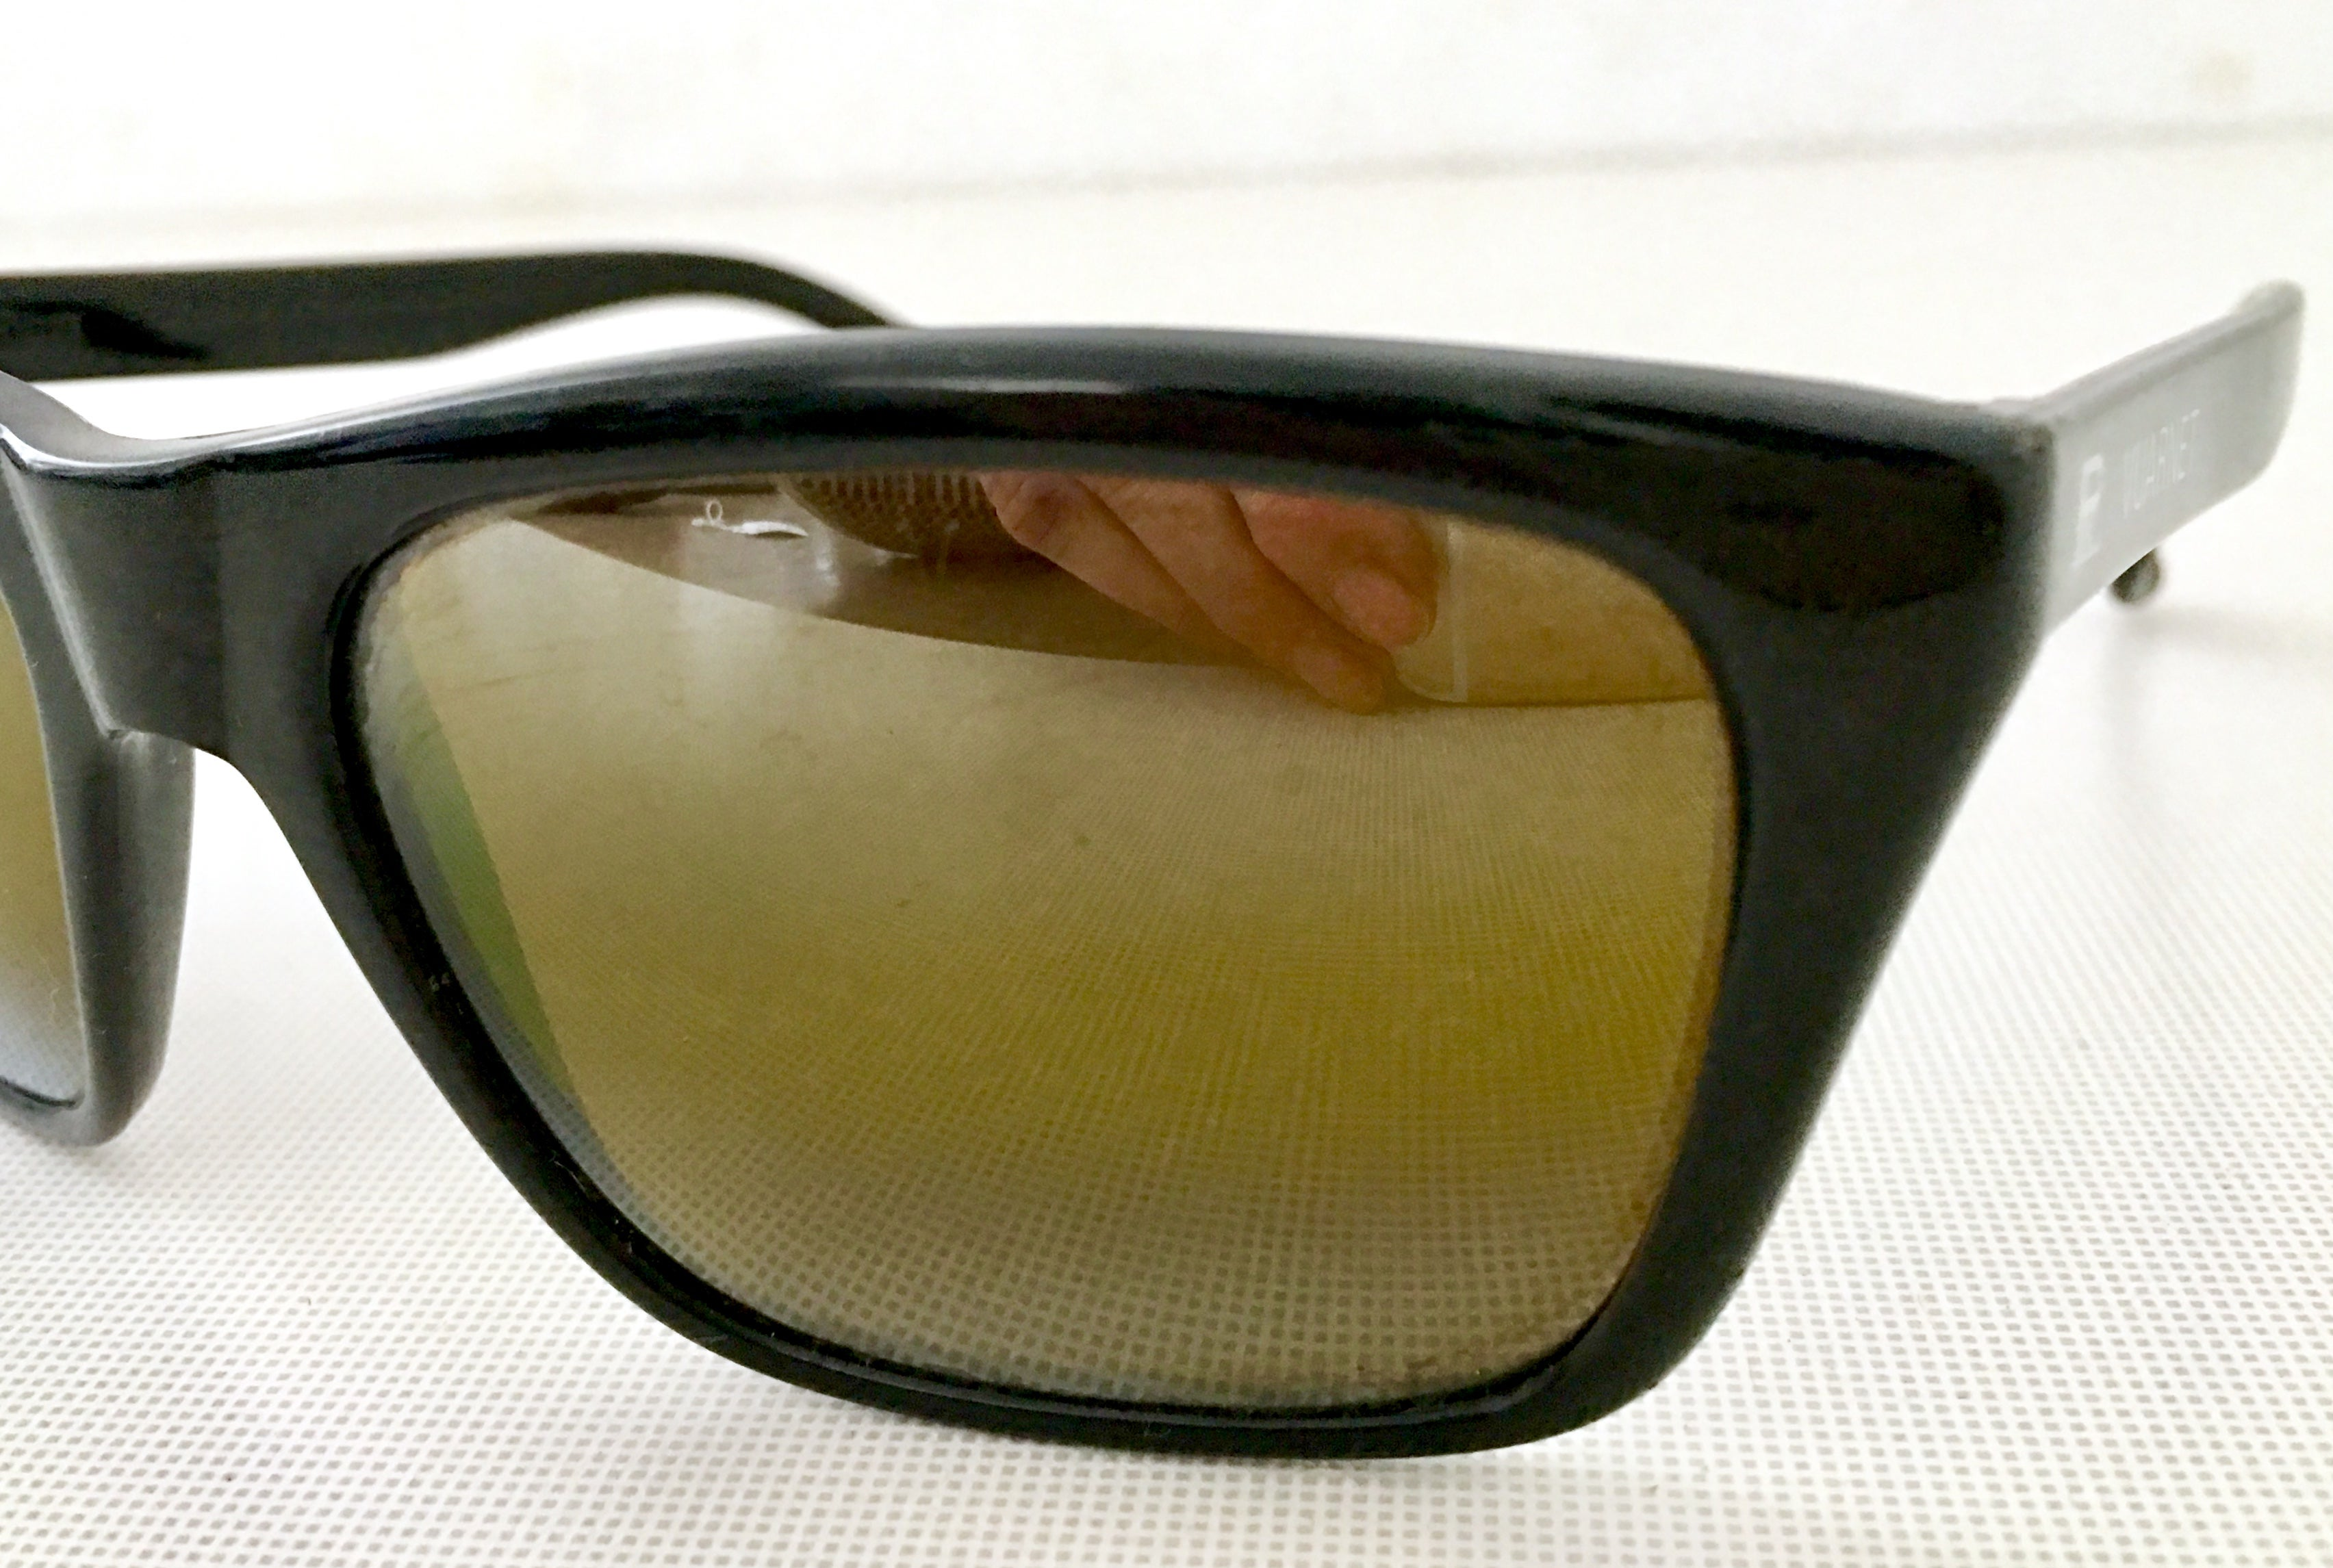 42a16c2f6e86 80'S Vuarnet France Black and Brown Mineral Poloarized Sunglasses at 1stdibs